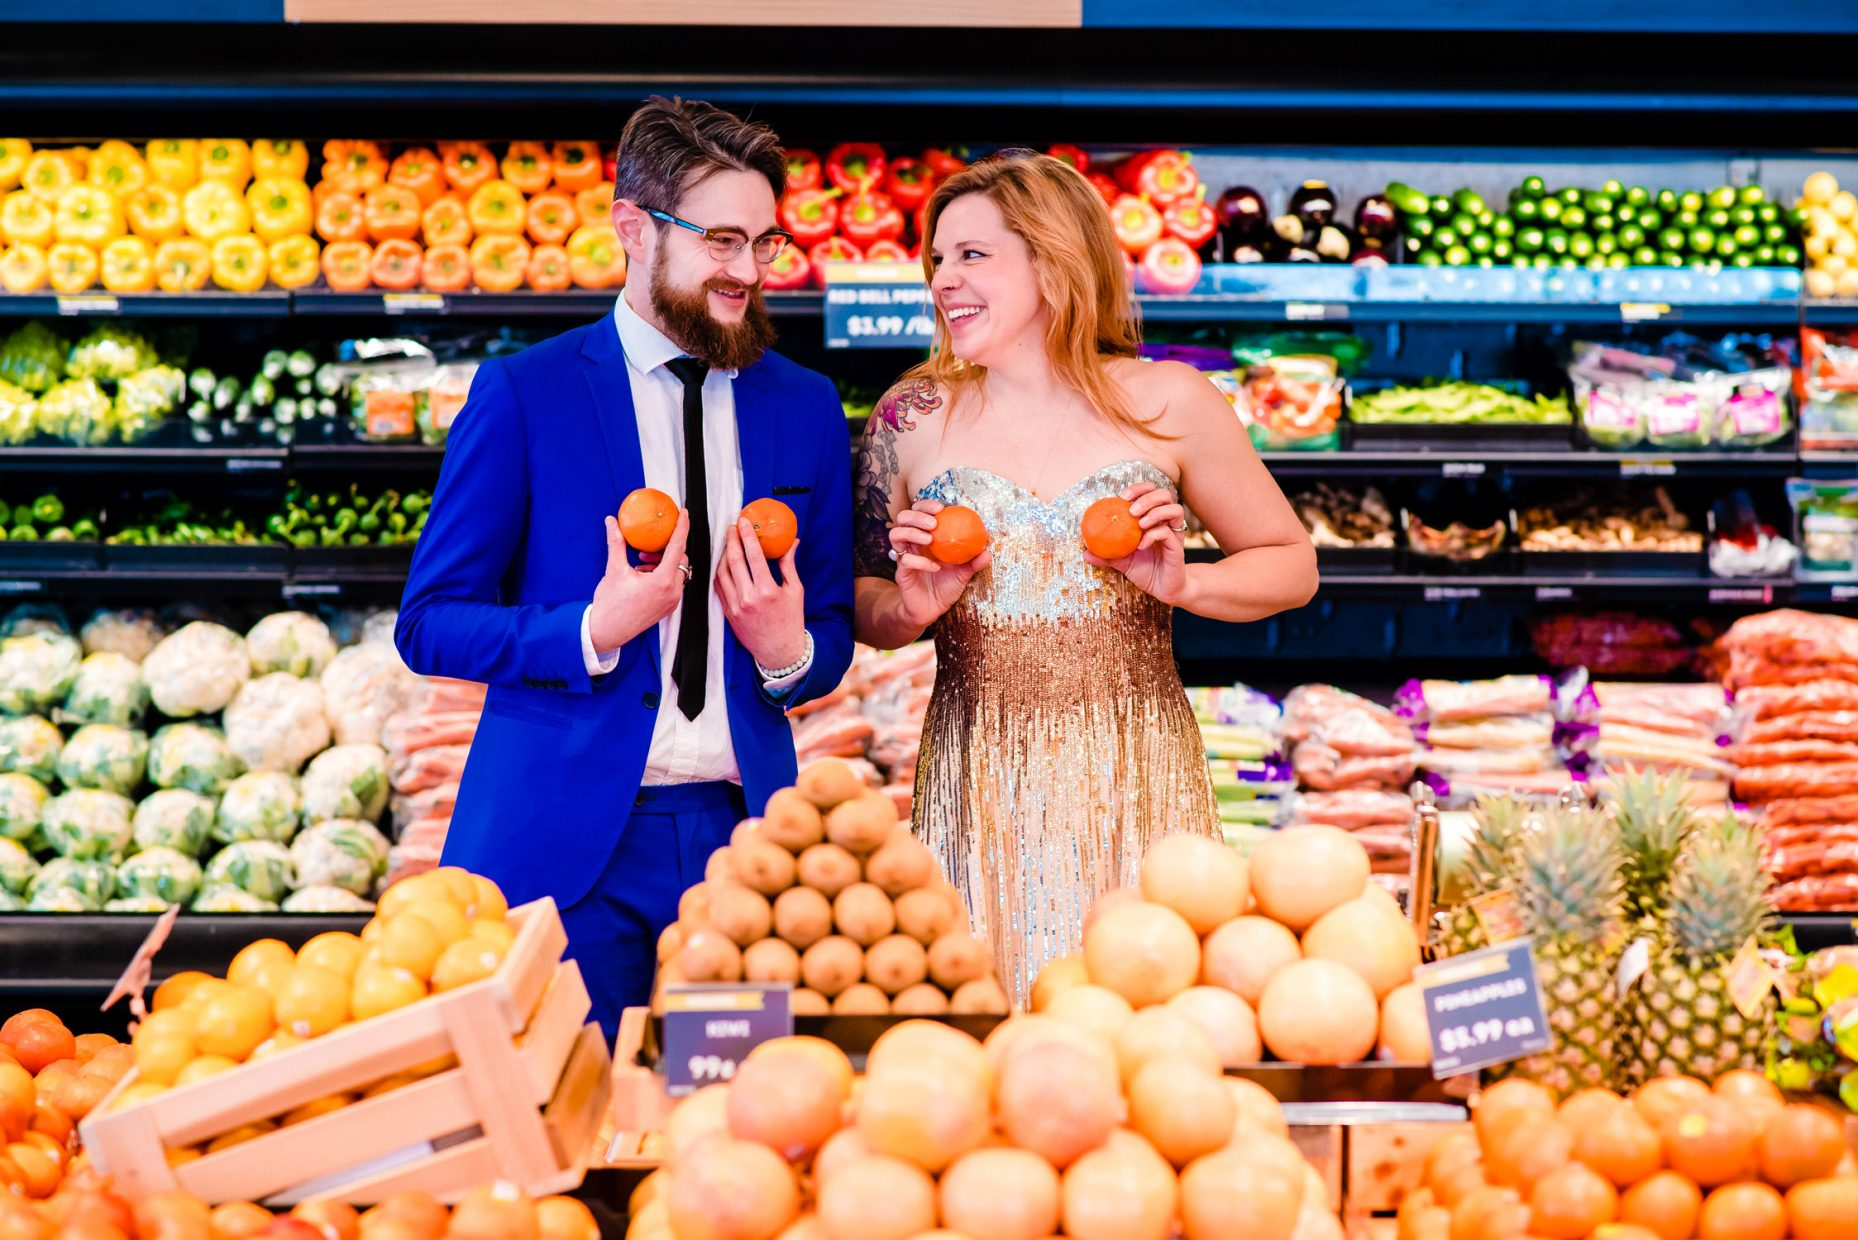 Whole Foods Engagement Photos Minneapolis Minnesota